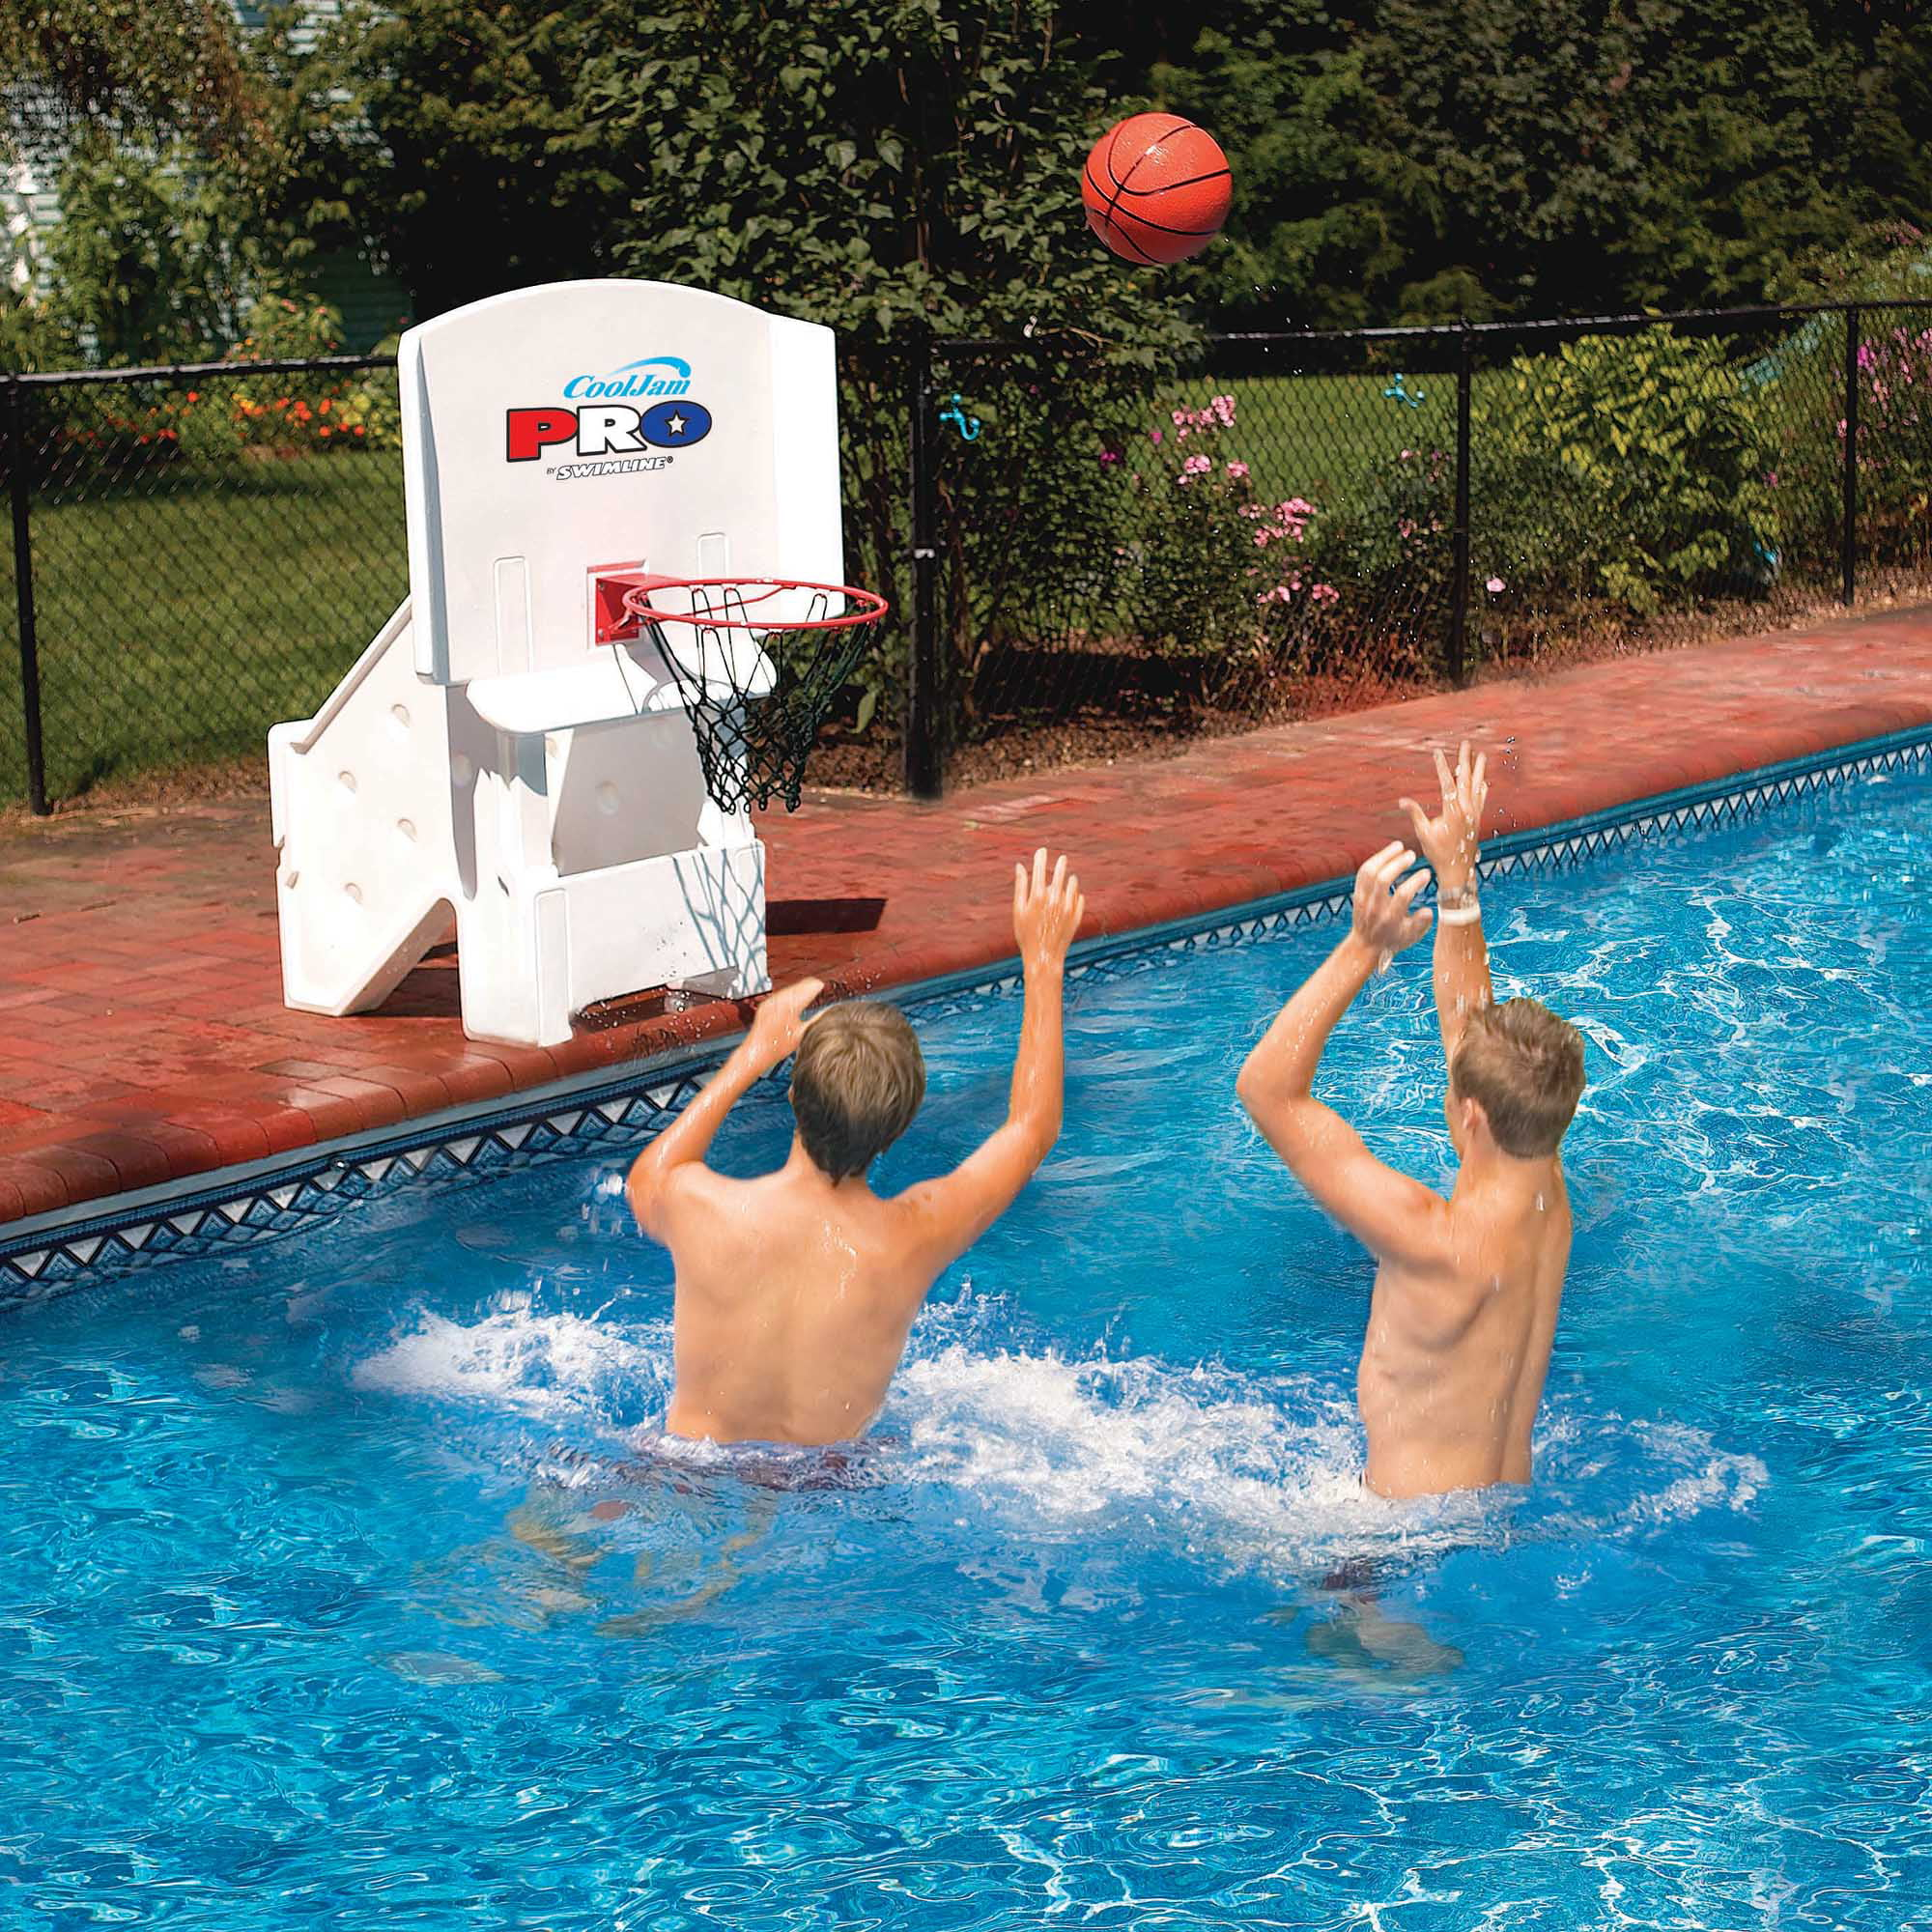 Swimline Cool Jam Pro Poolside Basketball Game Pool Toy by Blue Wave